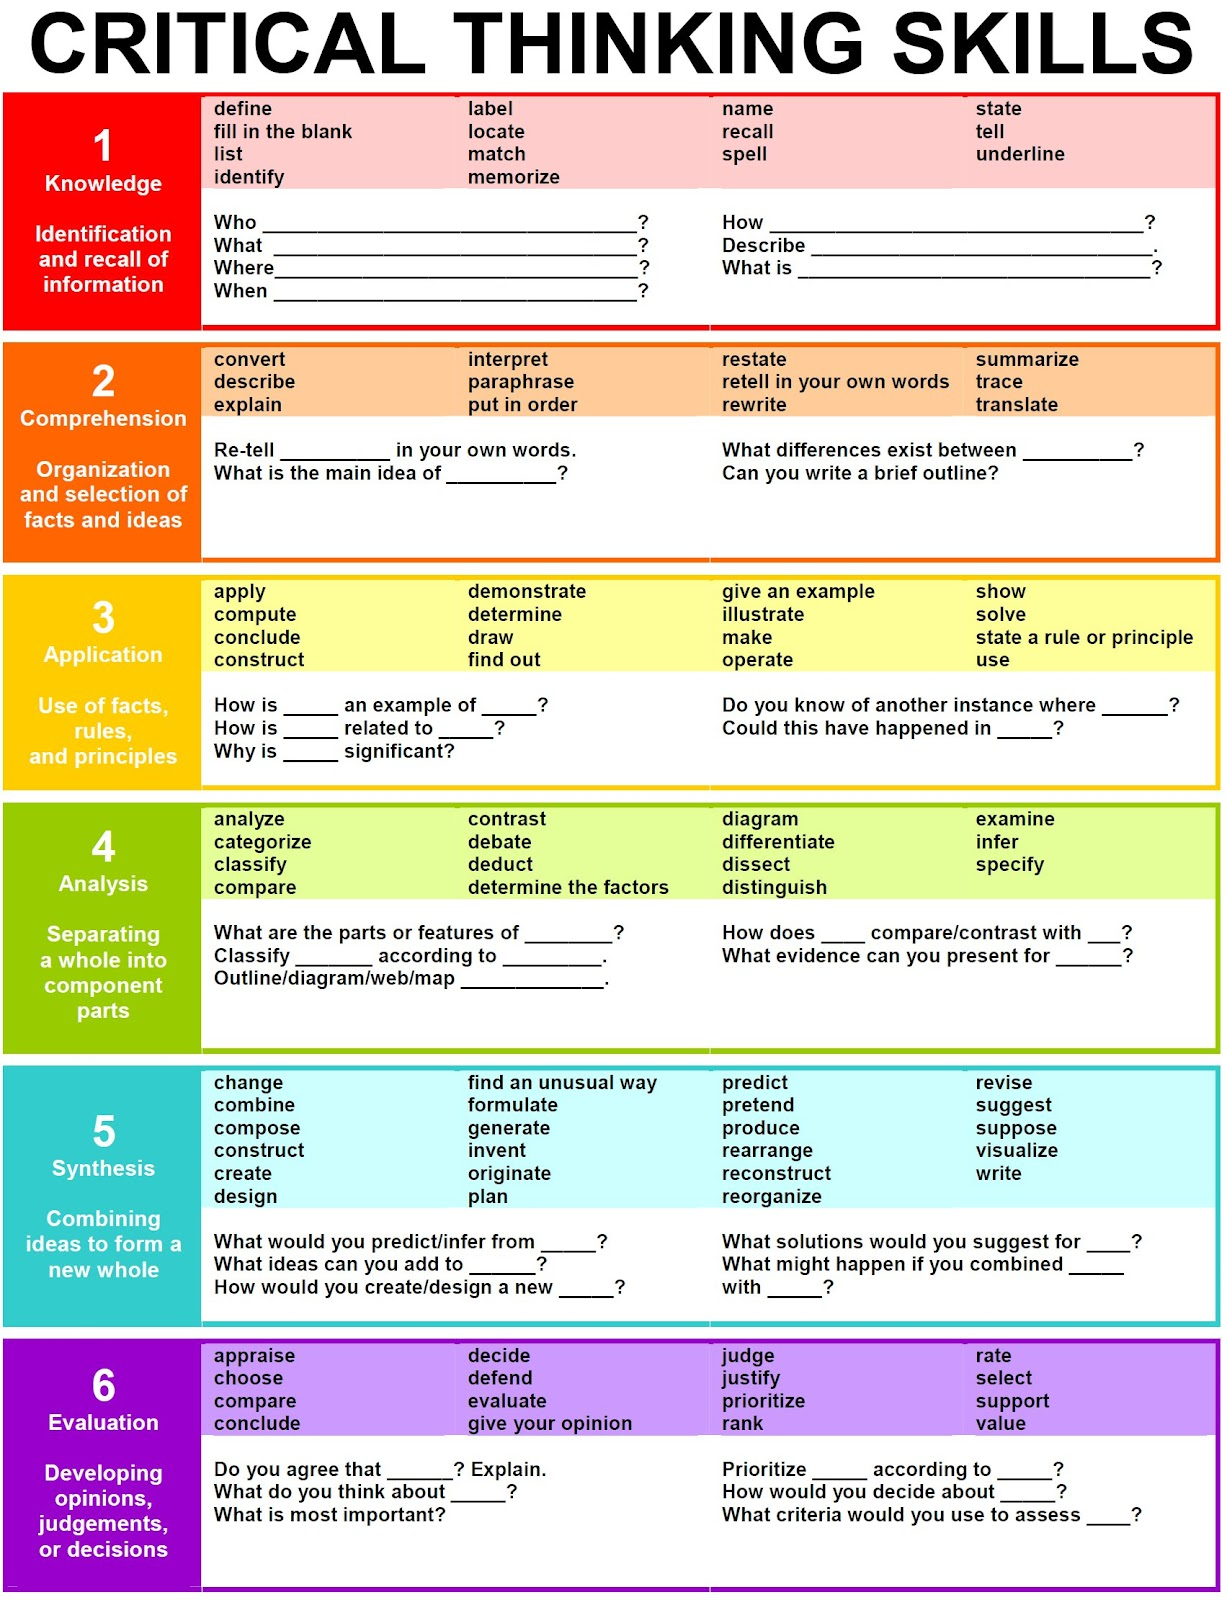 a quick guide to 21st century critical thinking skills for